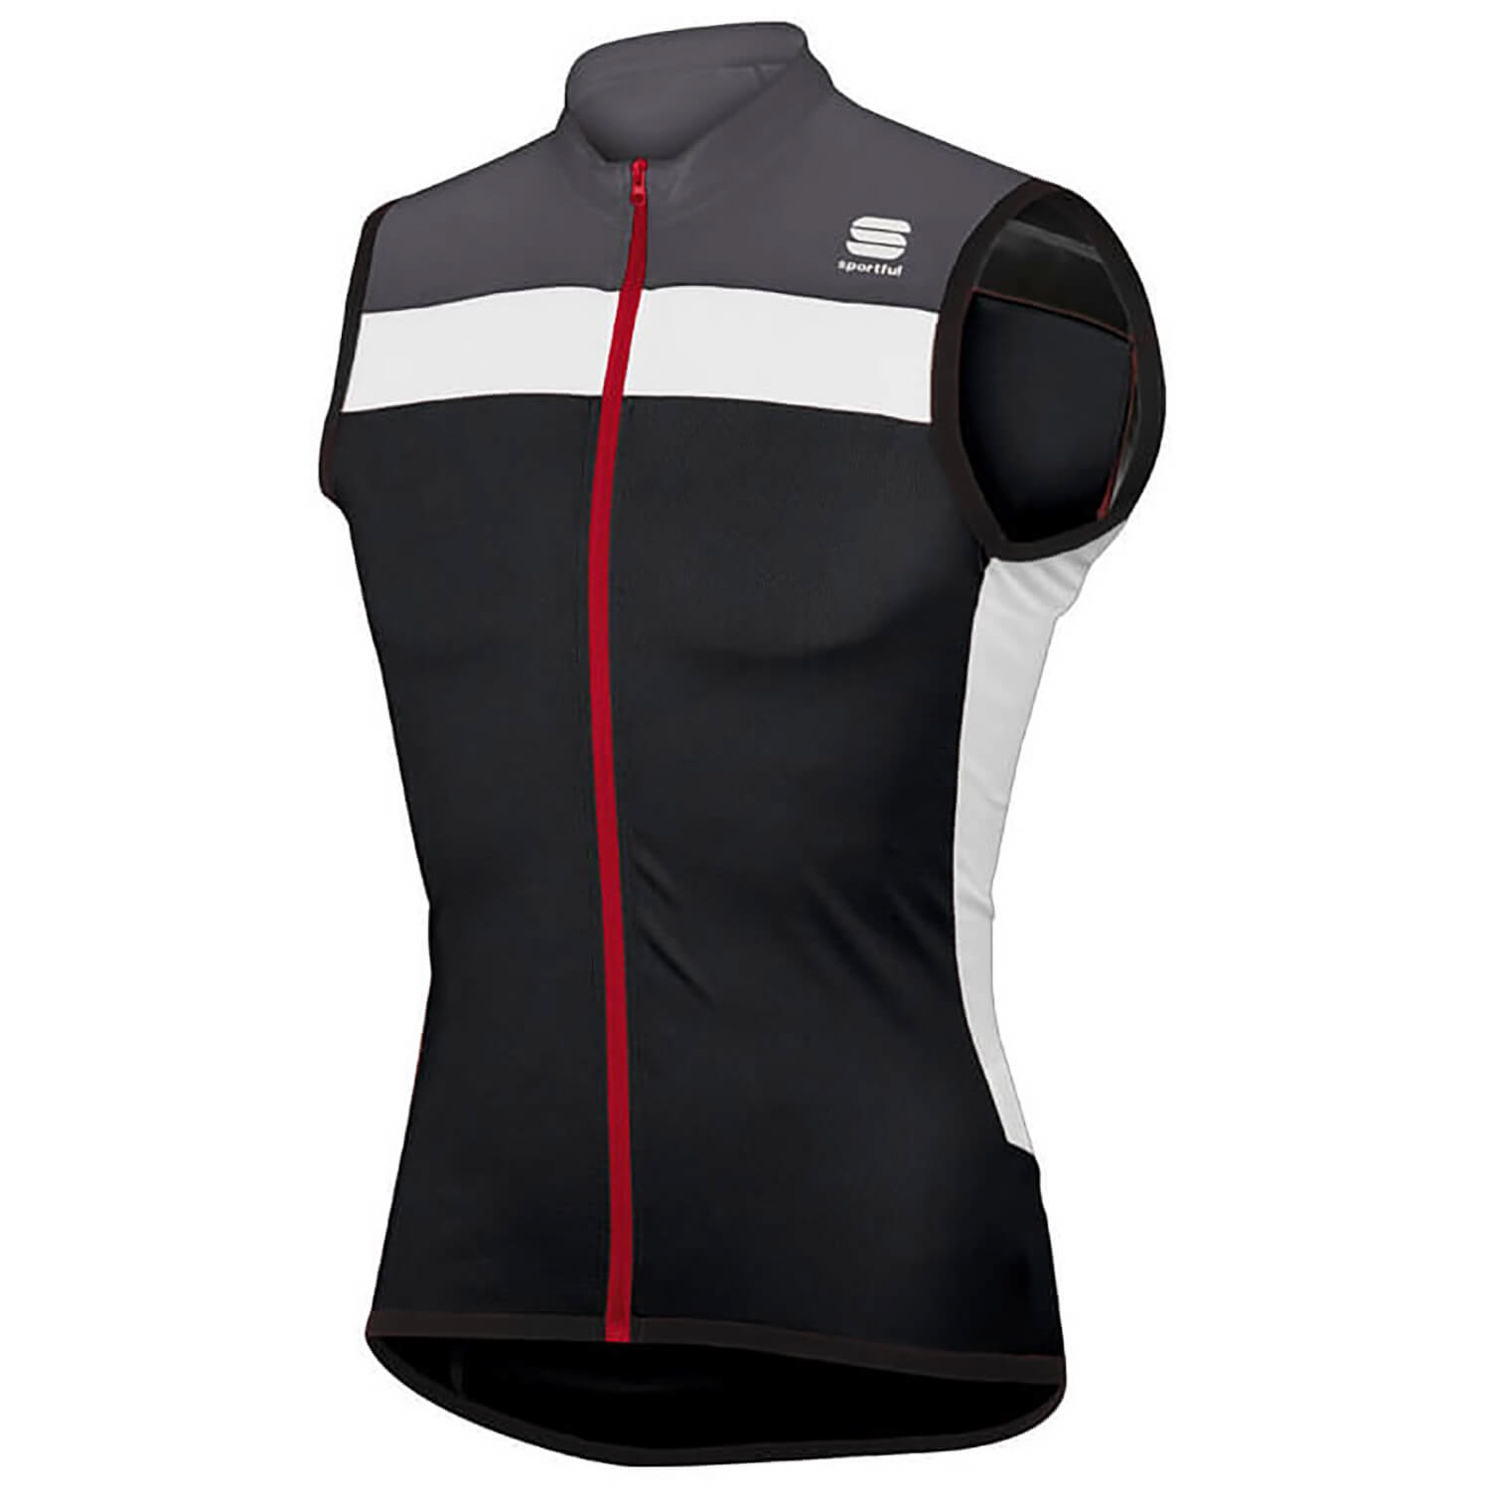 28cd3d59c3c7f5 Sportful Pista Sleeveless - Cycling singlet Men s